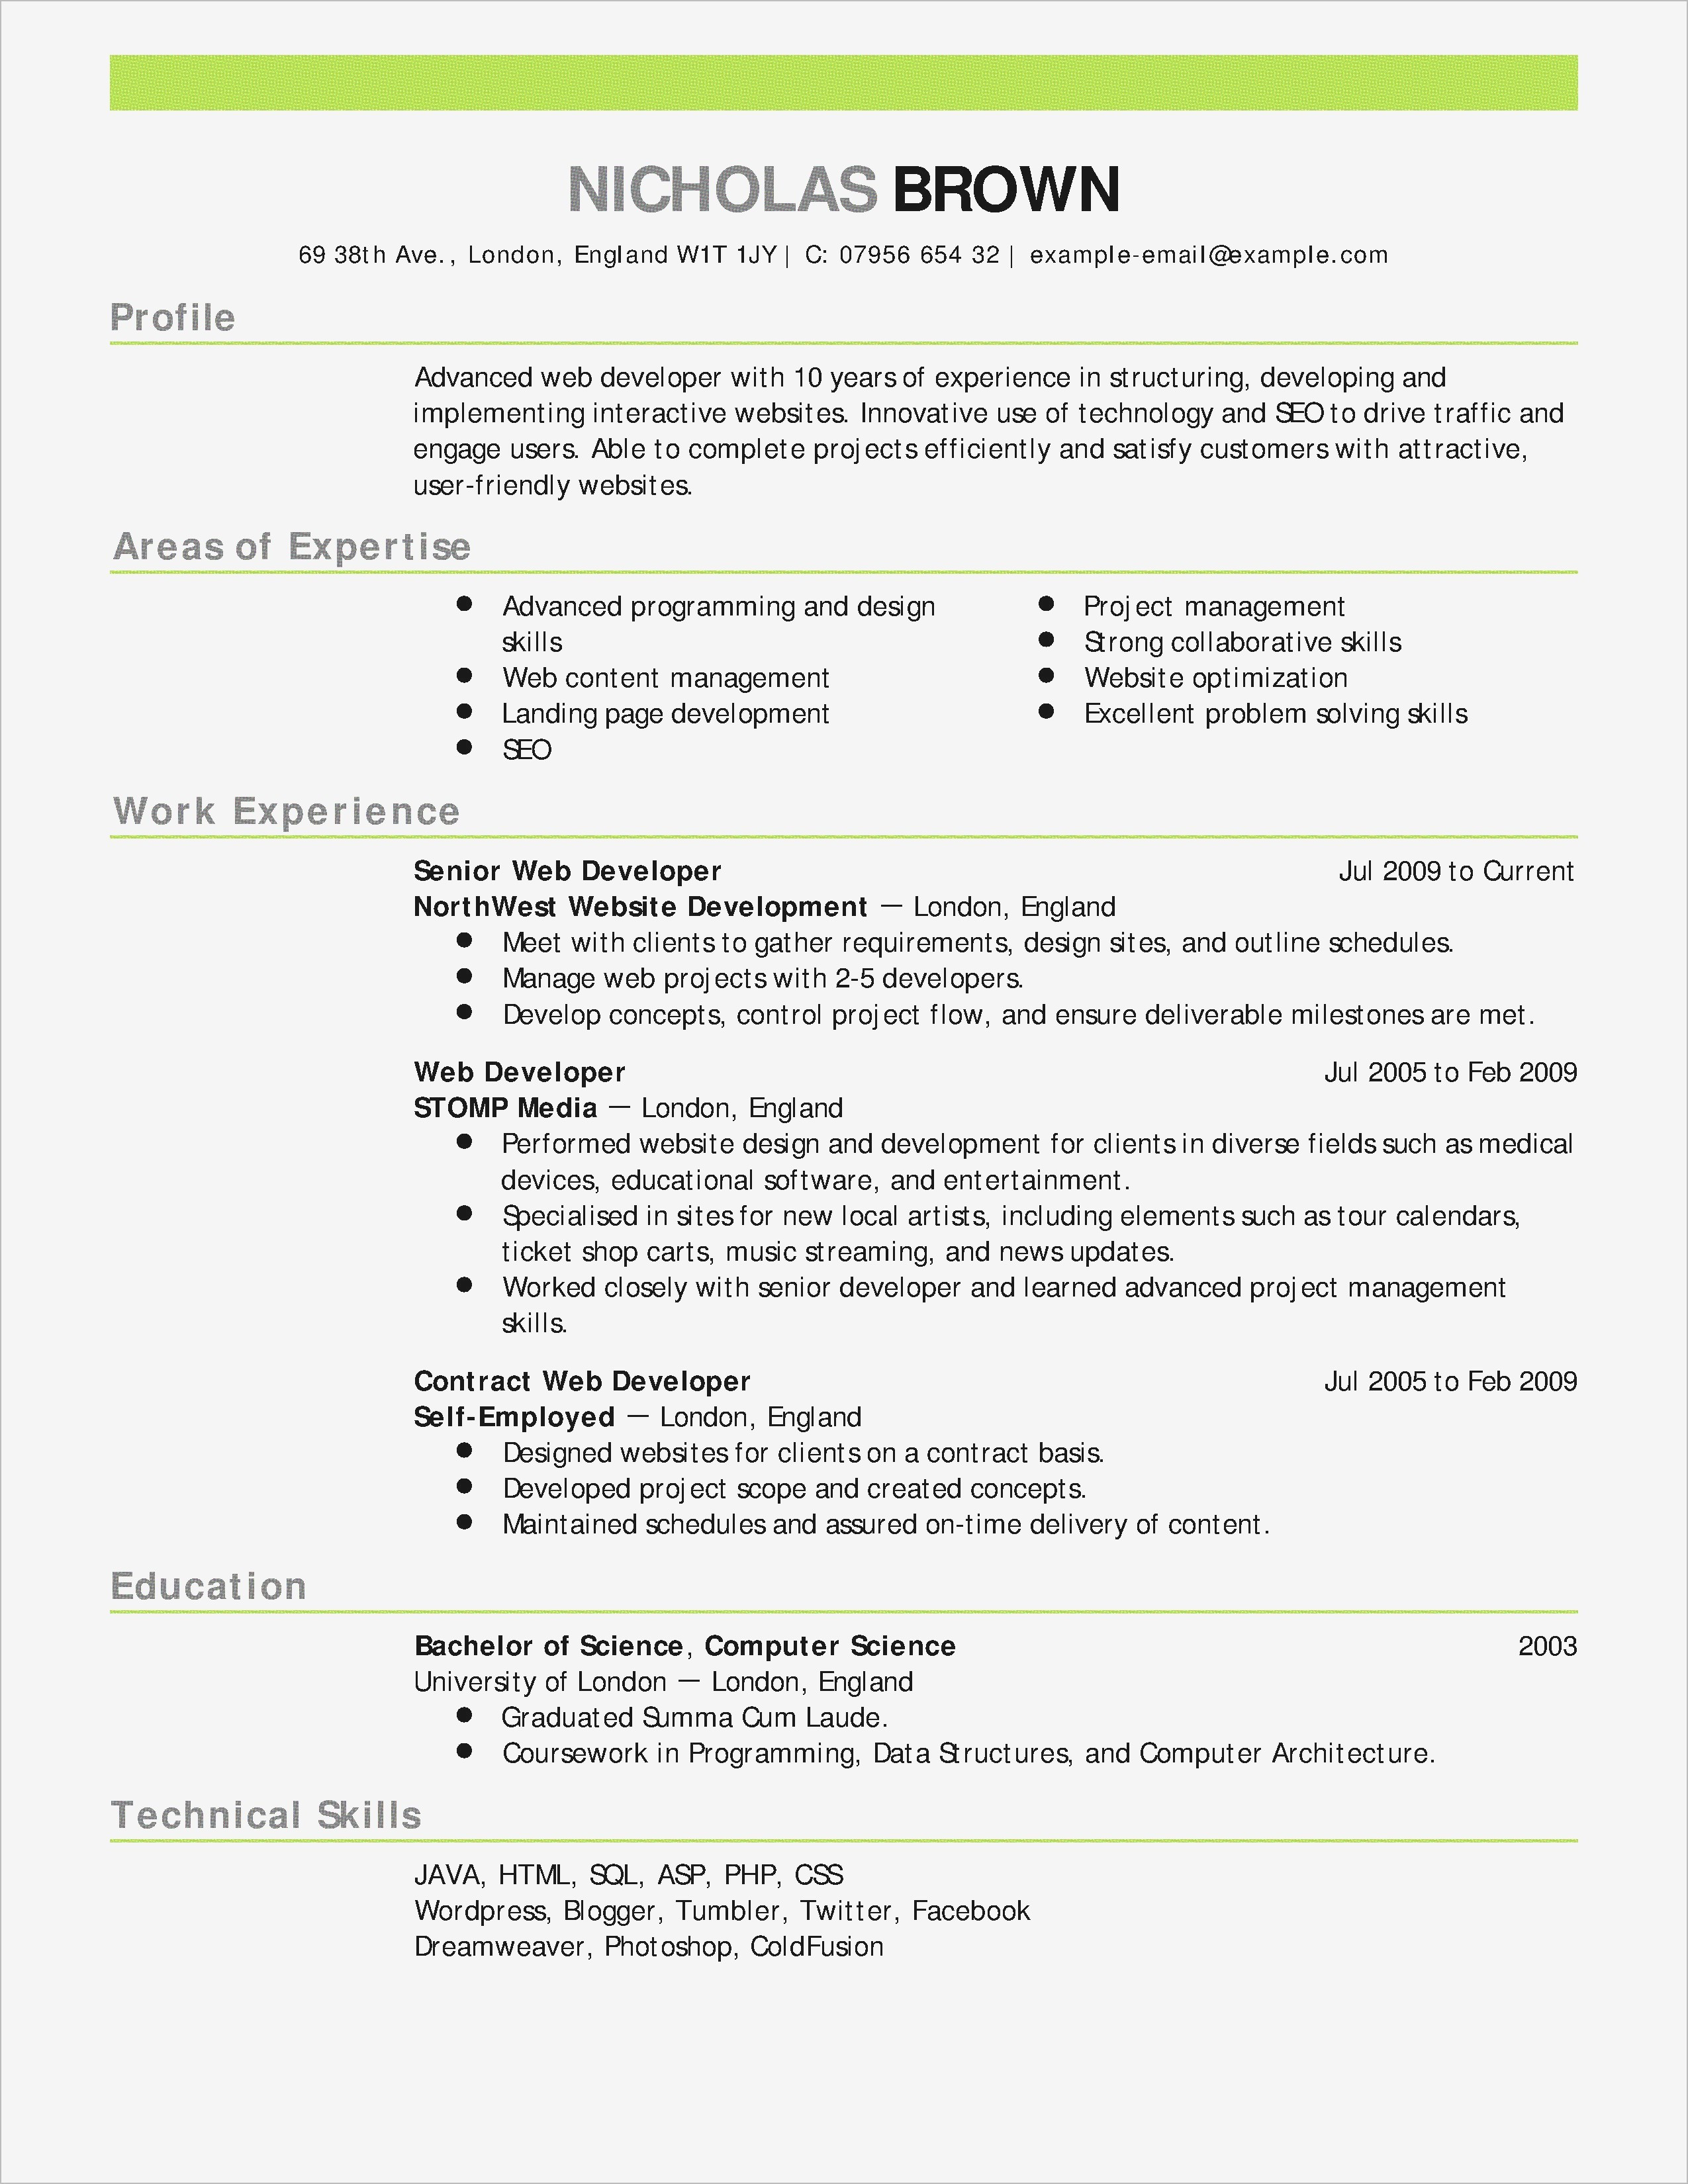 Need Help with Resume - Maintenance Cover Letter Template Sample